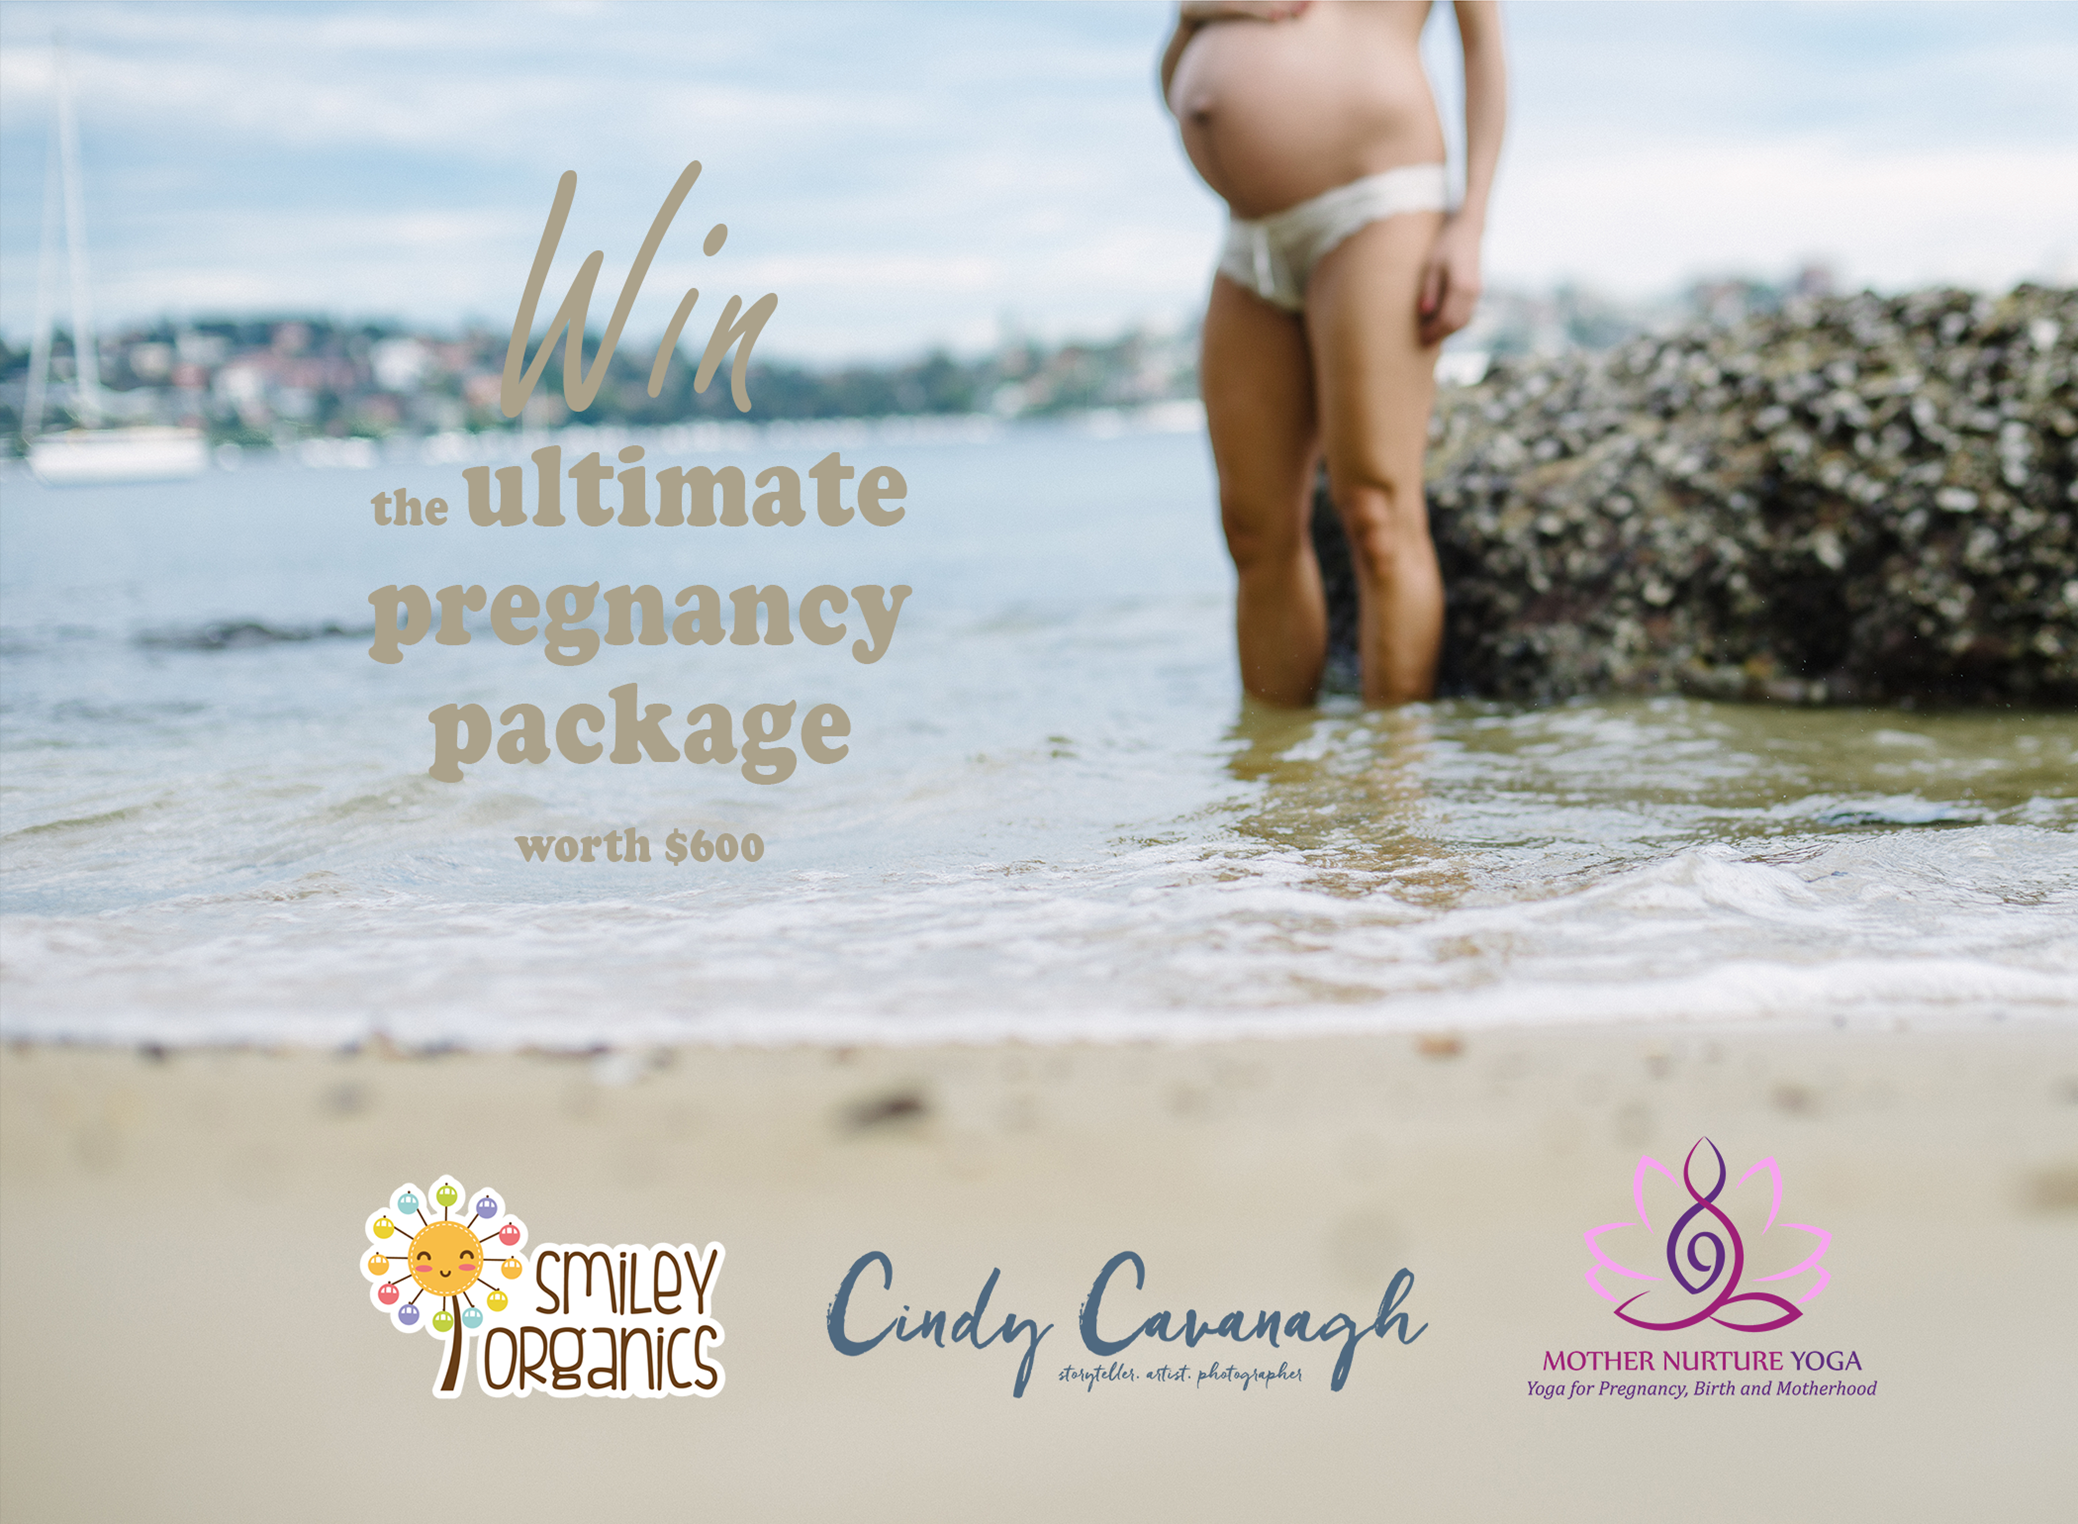 Maternity portraits in Sydney on the Northern Beaches by Cindy Cavanagh